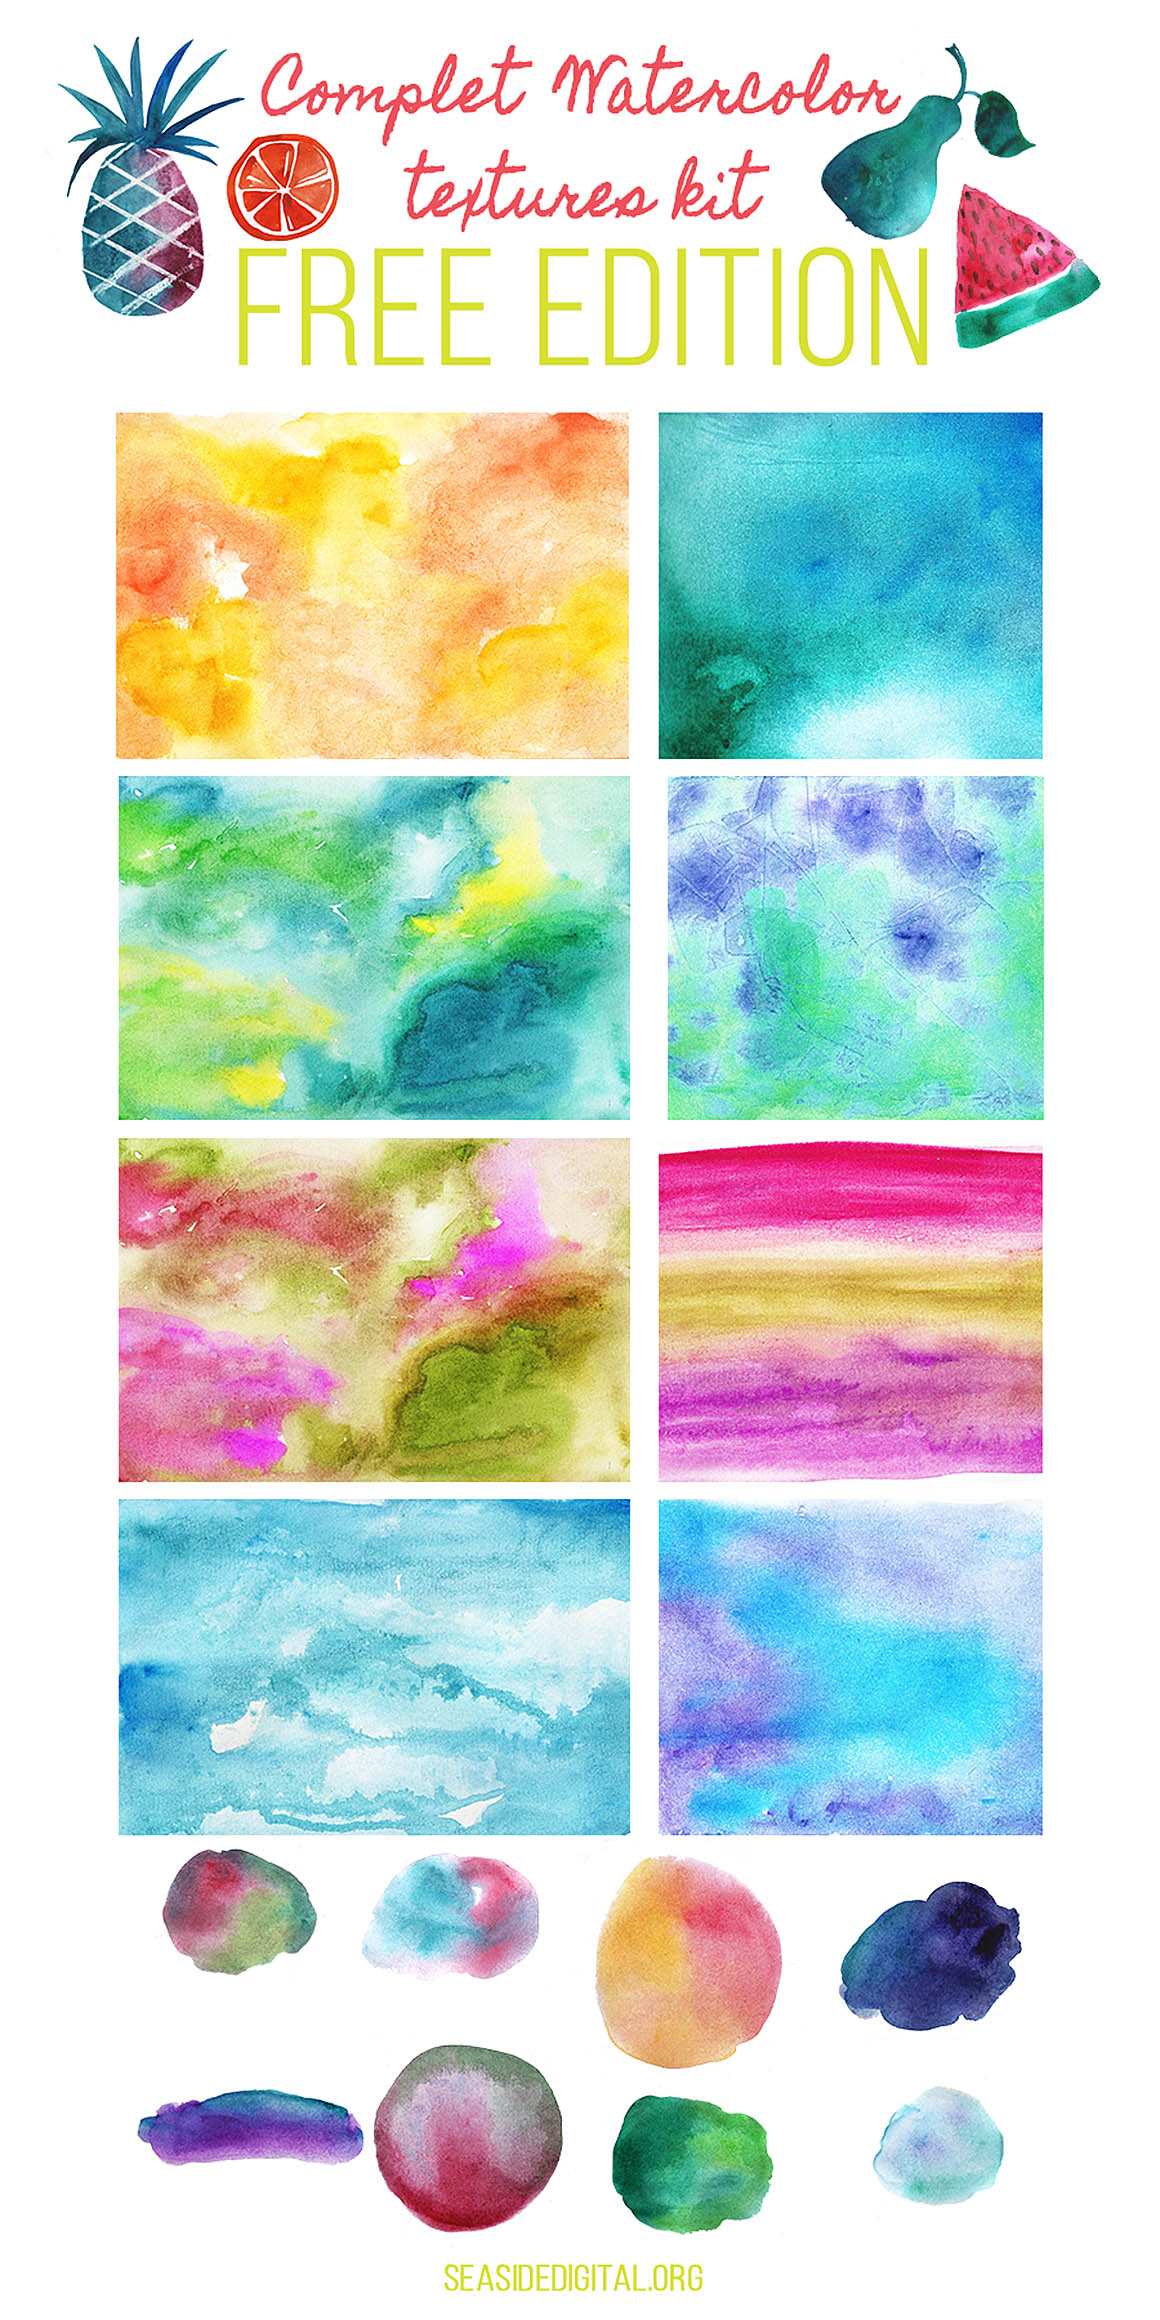 freewatercolortextures2